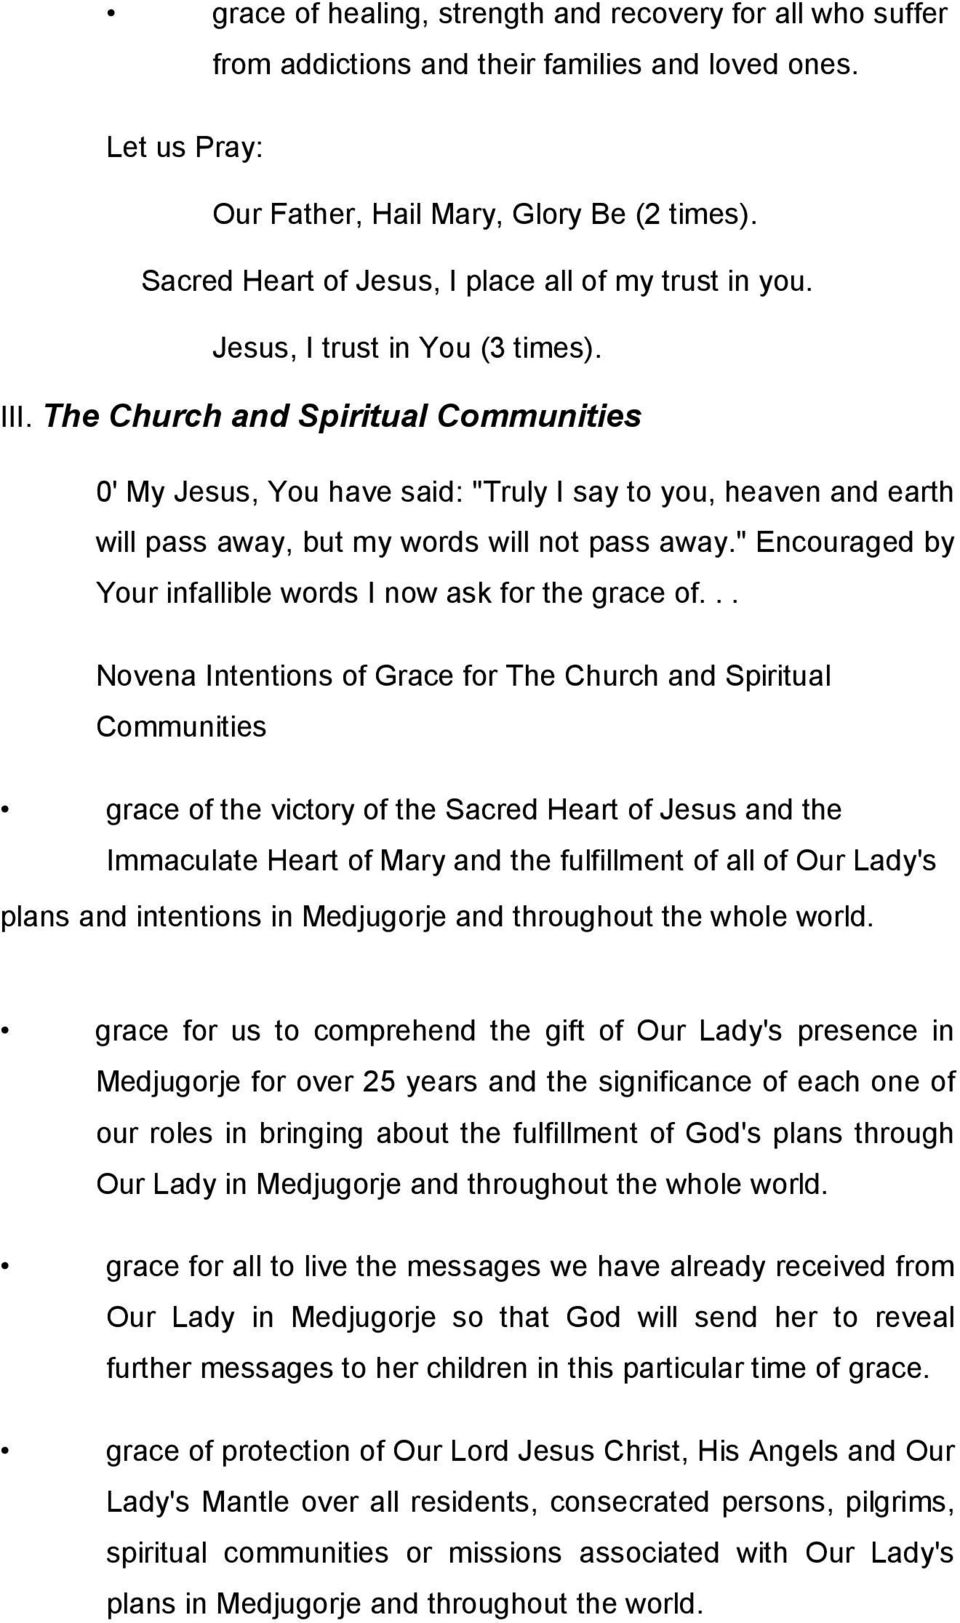 "The Church and Spiritual Communities 0' My Jesus, You have said: ""Truly I say to you, heaven and earth will pass away, but my words will not pass away."